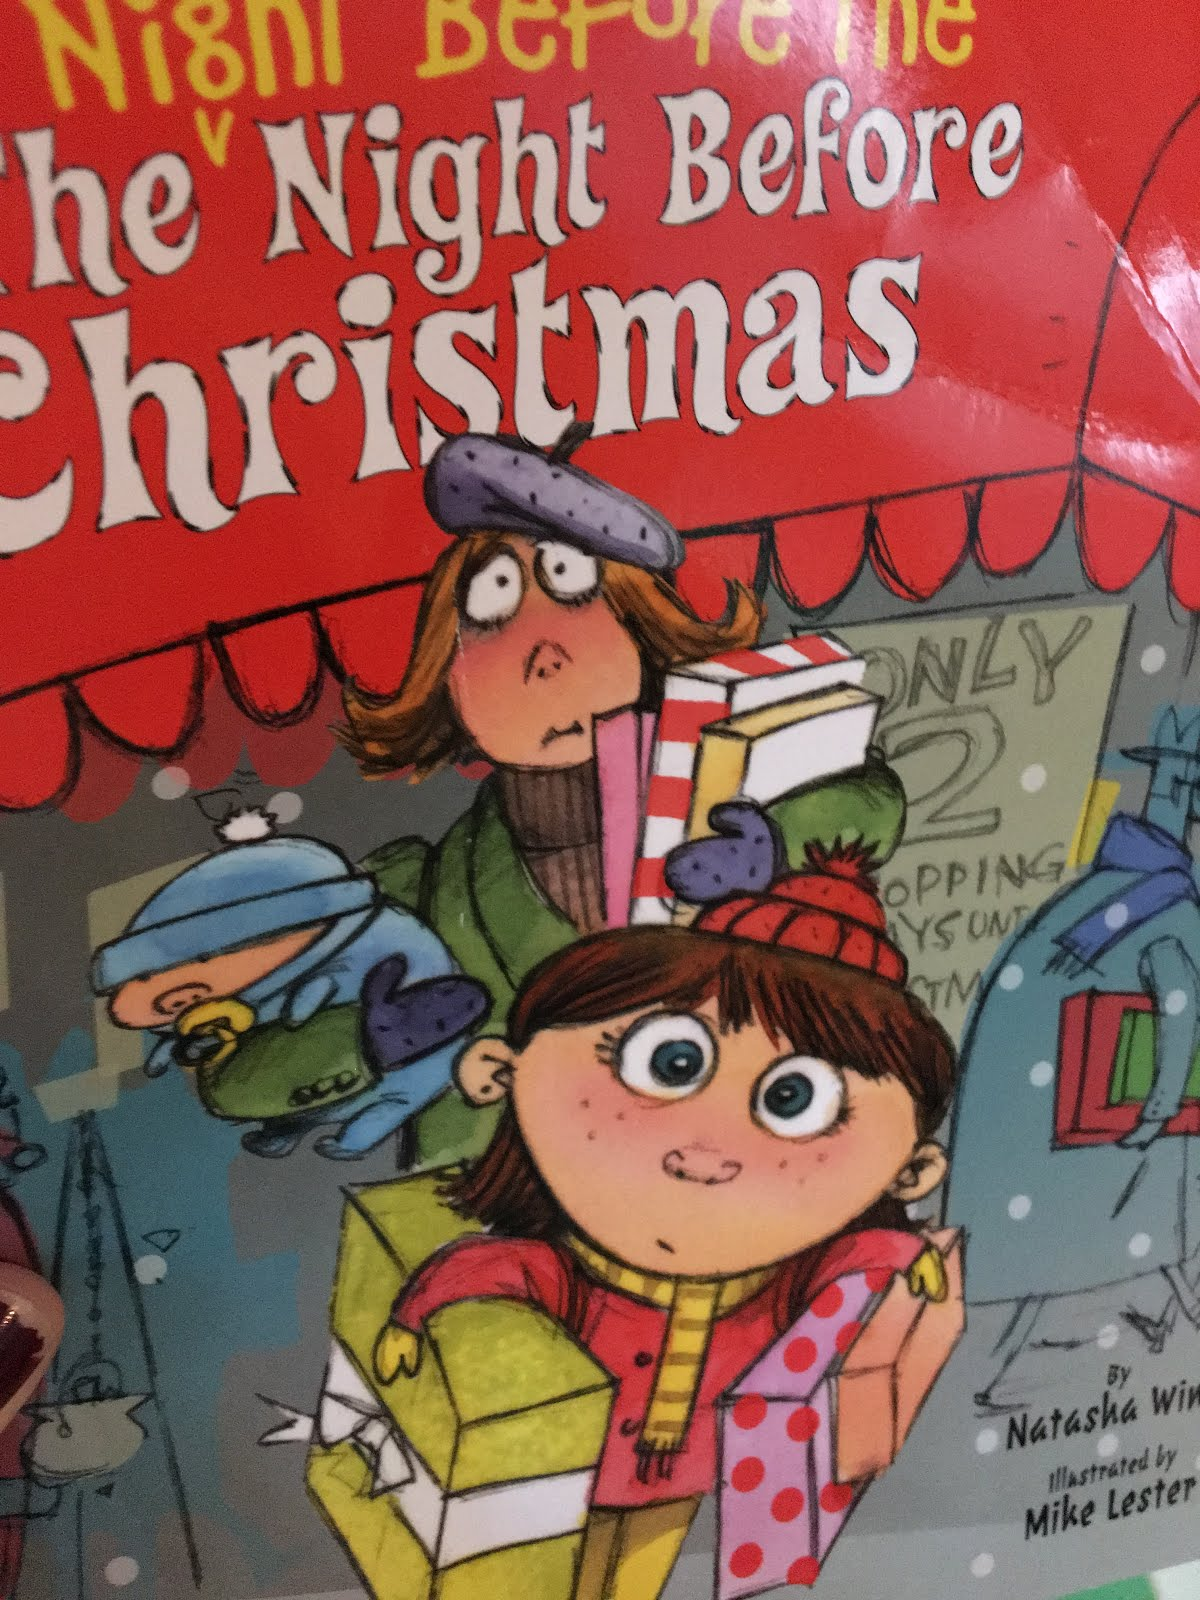 This Is An Adorable Book About How The Night Before Christmas Nothing Would Go Right For Family Unfortunate And Comical Things Kept Happening On